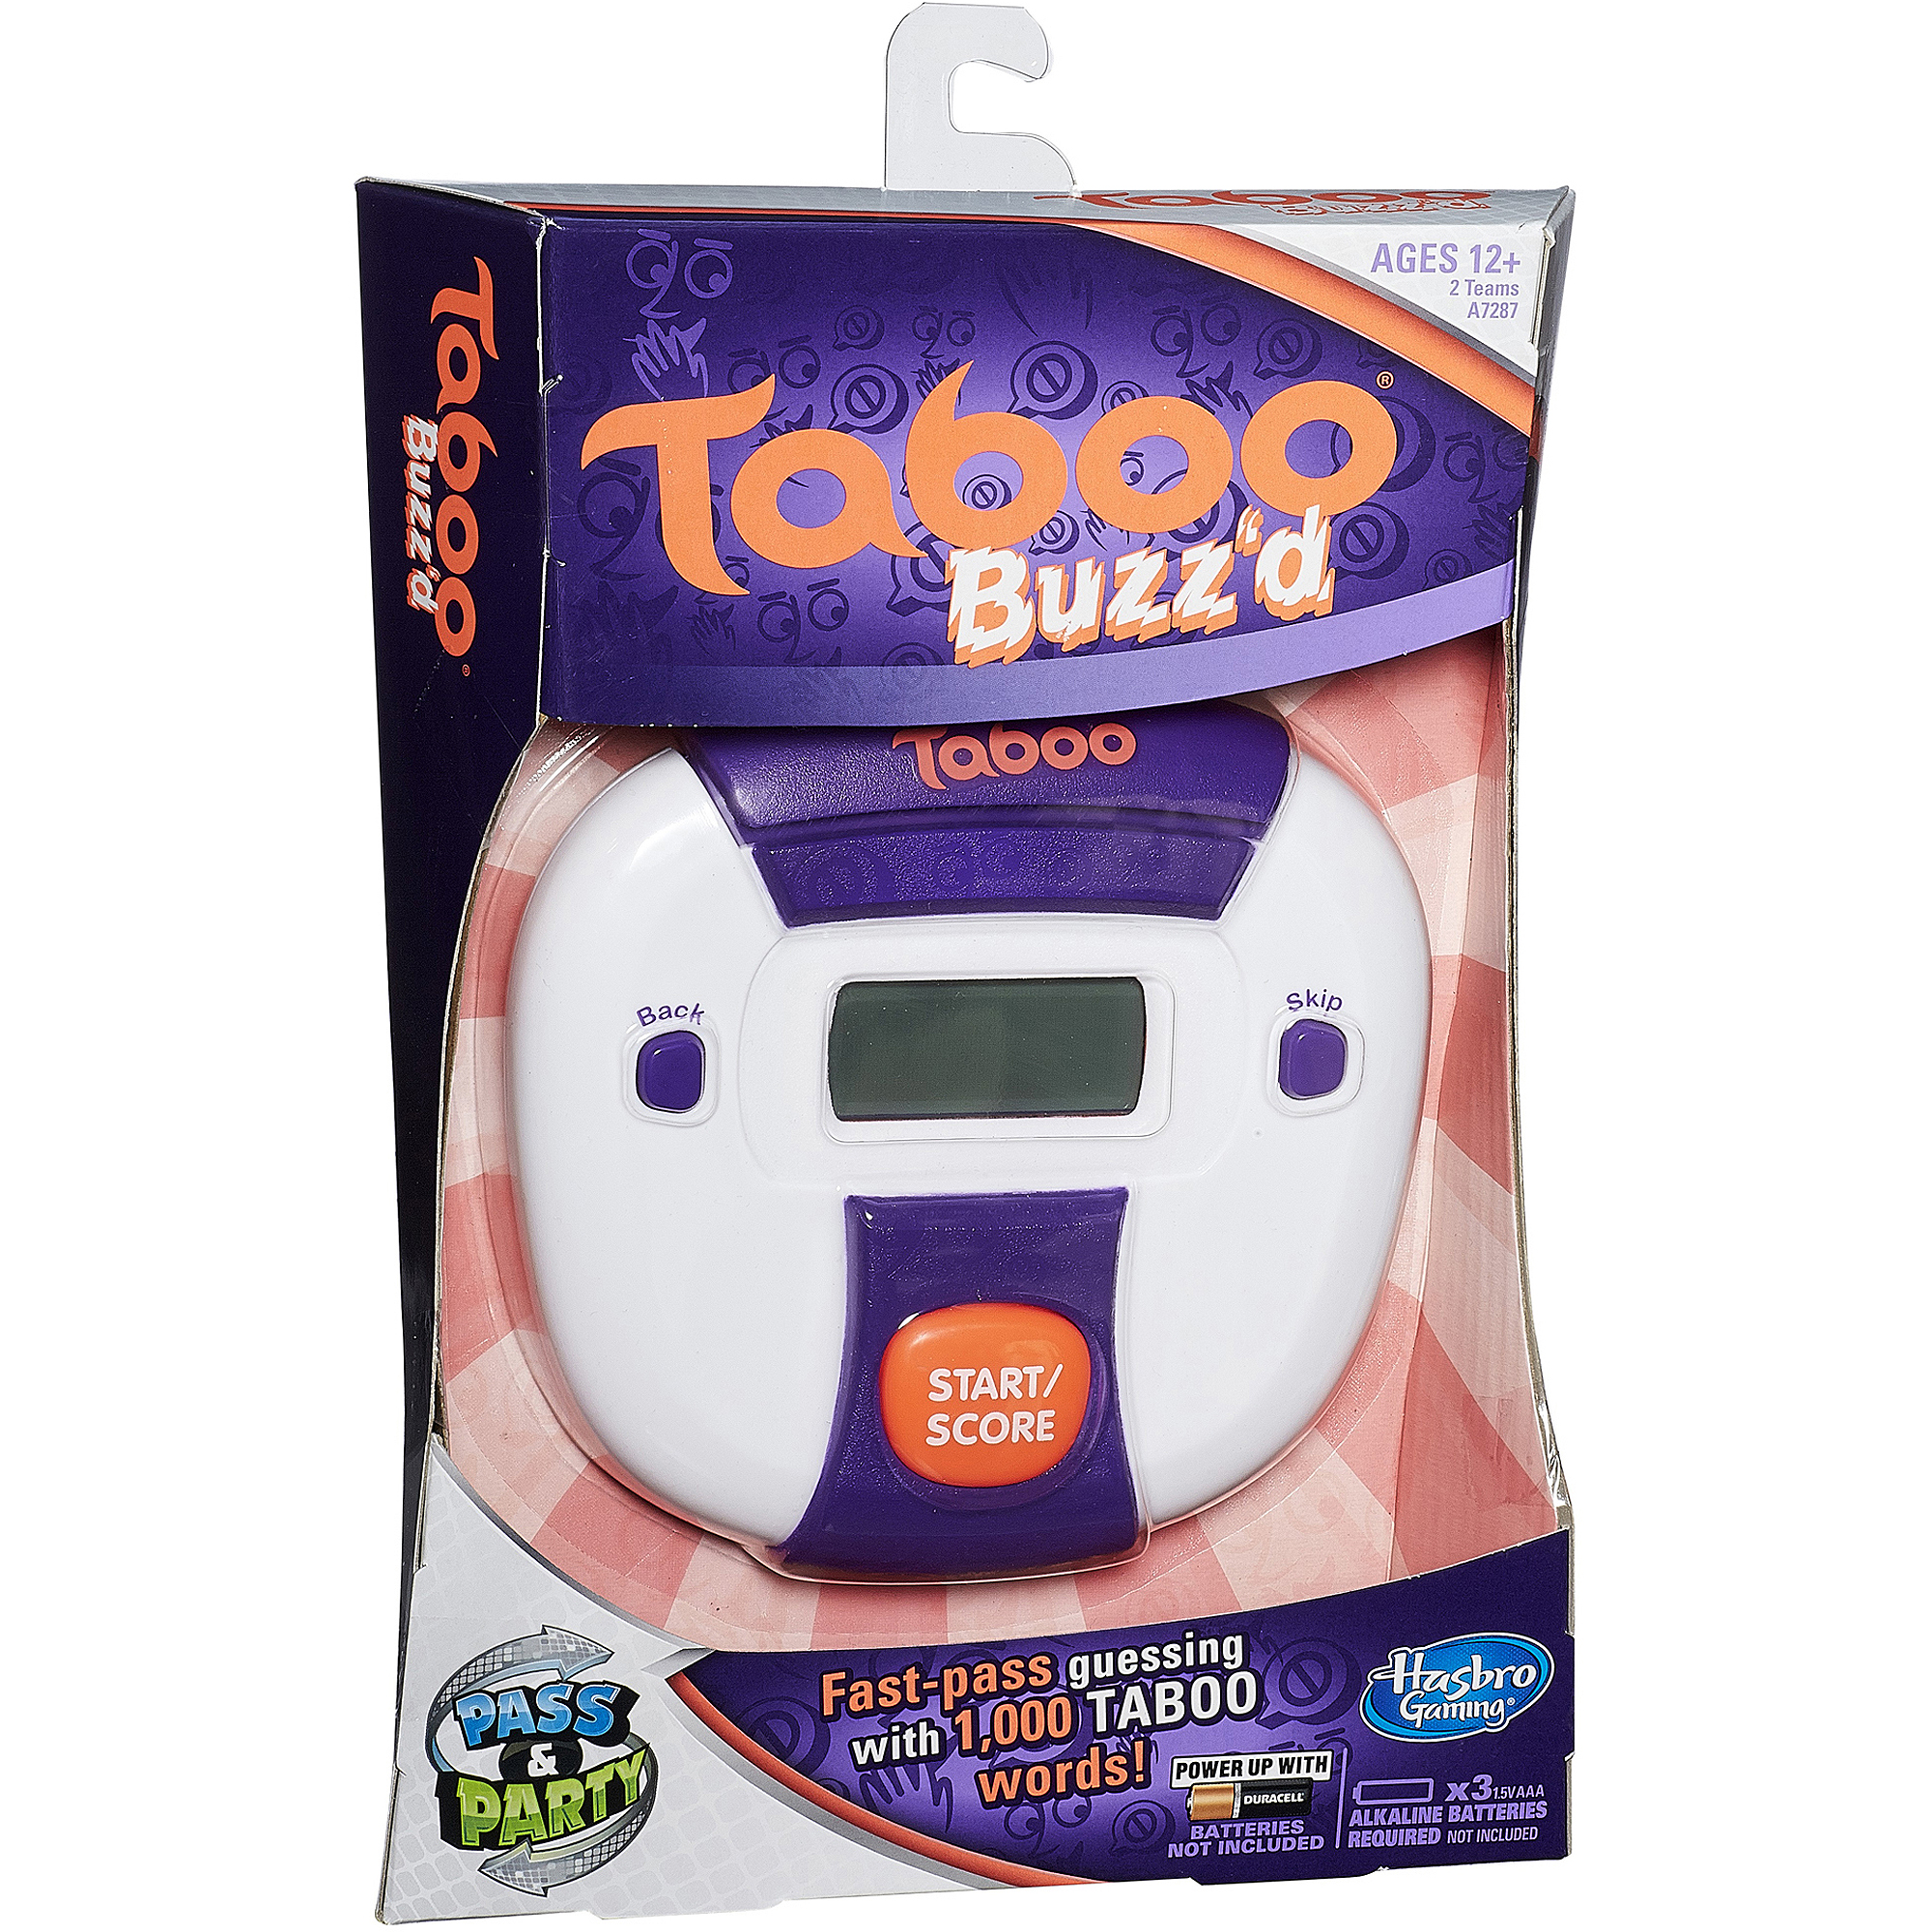 Taboo Buzz���d Game